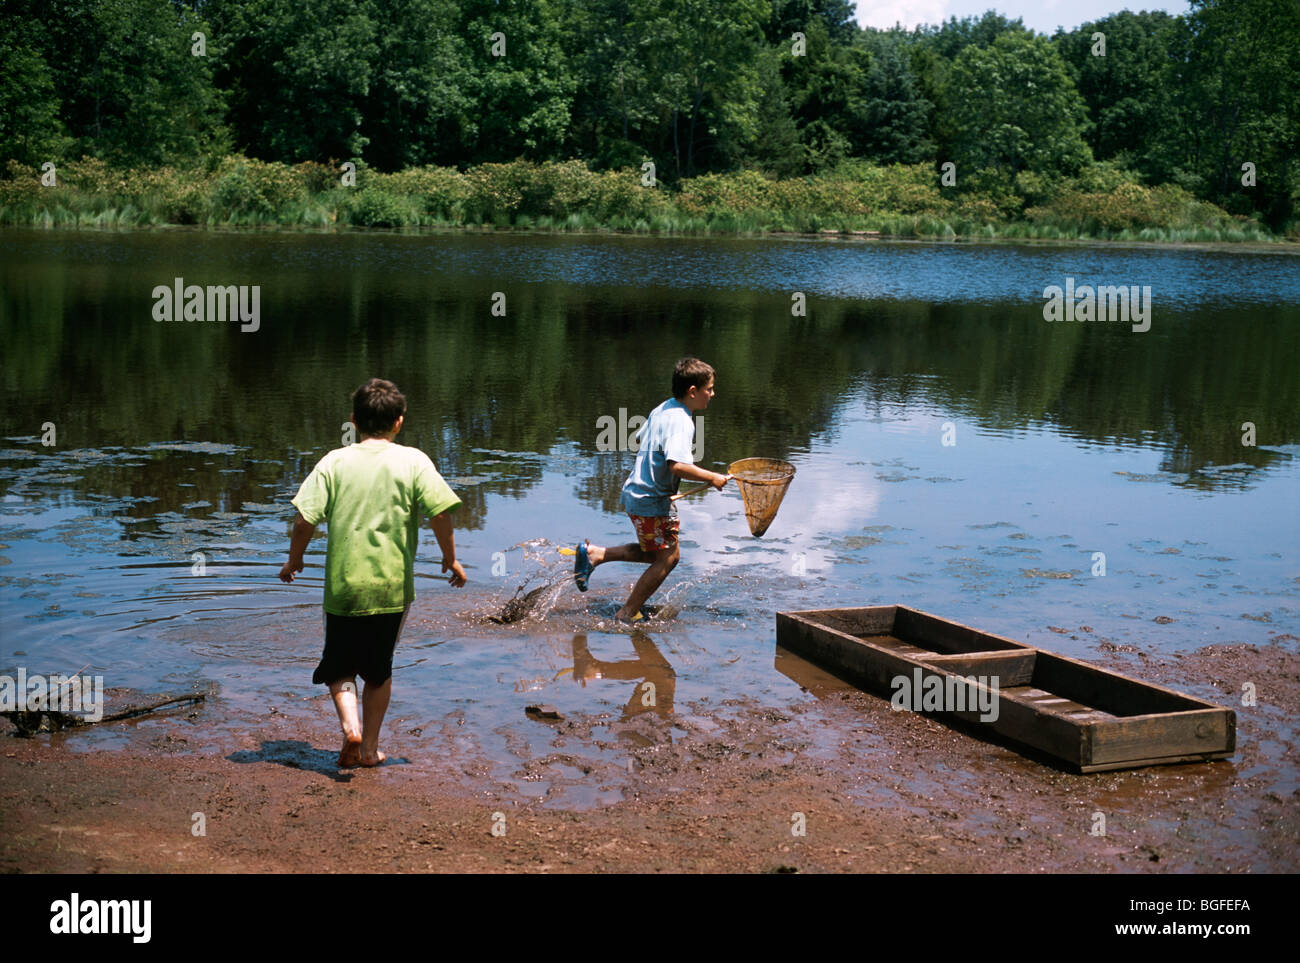 8 year-old twins exploring nature at Watershed Pond. Pennington, New Jersey - Stock Image